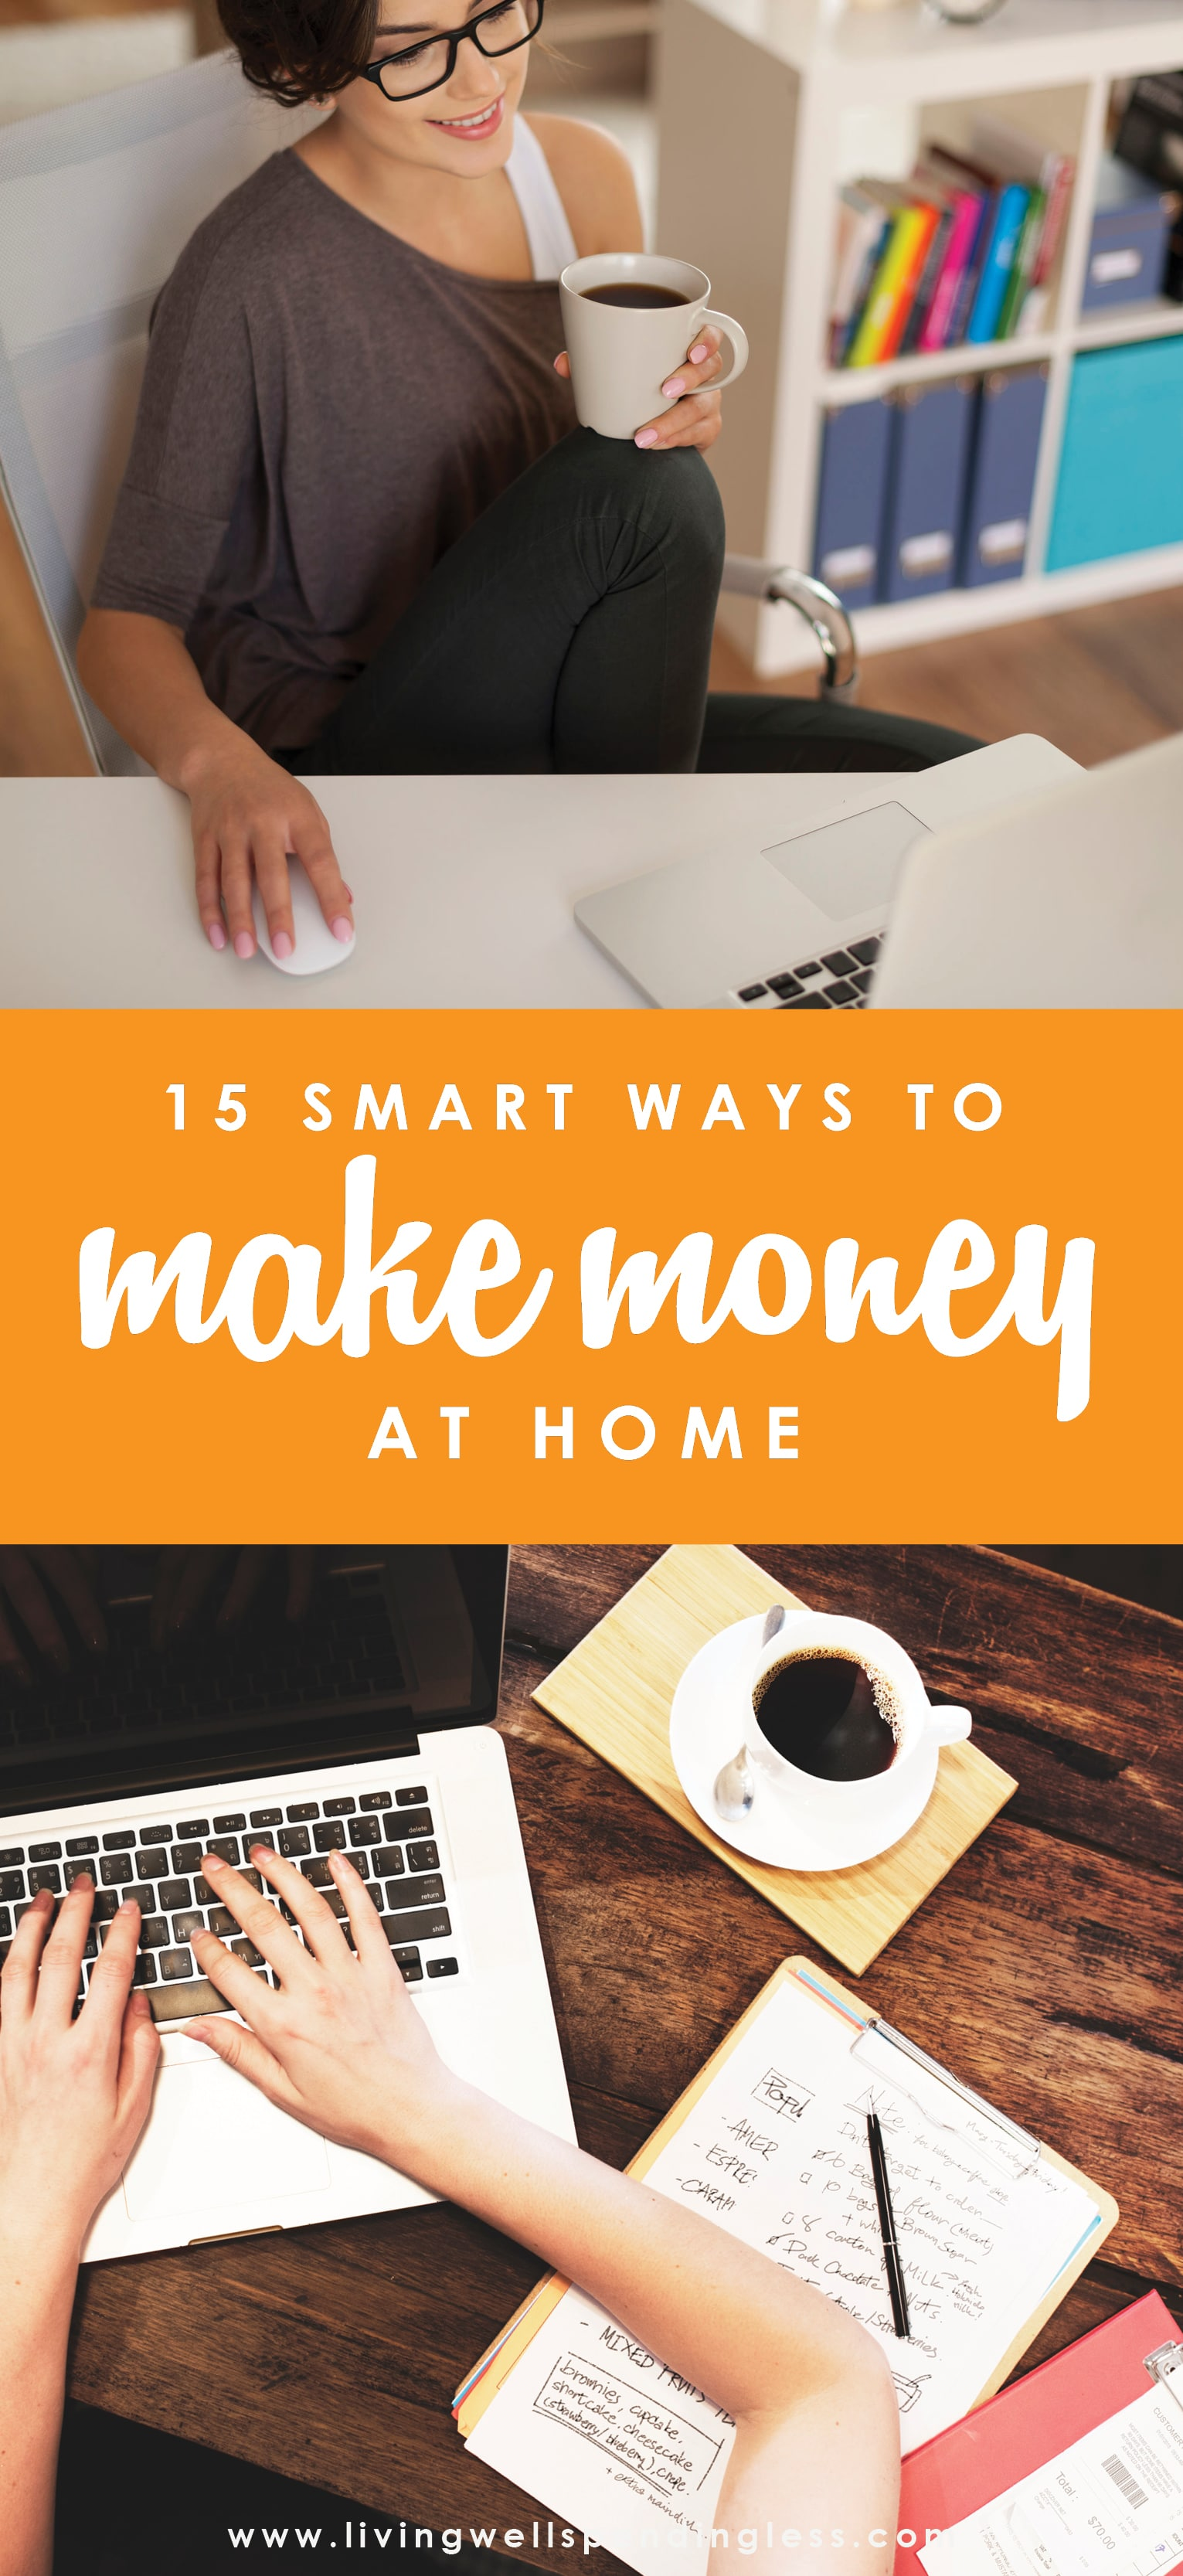 Whether you're looking to get paid for a passion project or just help pad your budget a little, starting a small business at home is a great way to do it. Today the possibilities are greater than ever before. Here are just 15 suggestions we put together to help you start a business without leaving home.   15 Smart Ways to Earn Money From Home  ⎢  Make a Full-Time Living Without Leaving the House  ⎢  Start an Online Business  ⎢  Entrepreneur  ⎢  Work for Yourself  ⎢  Work from Home  ⎢  Stay at Home Mom